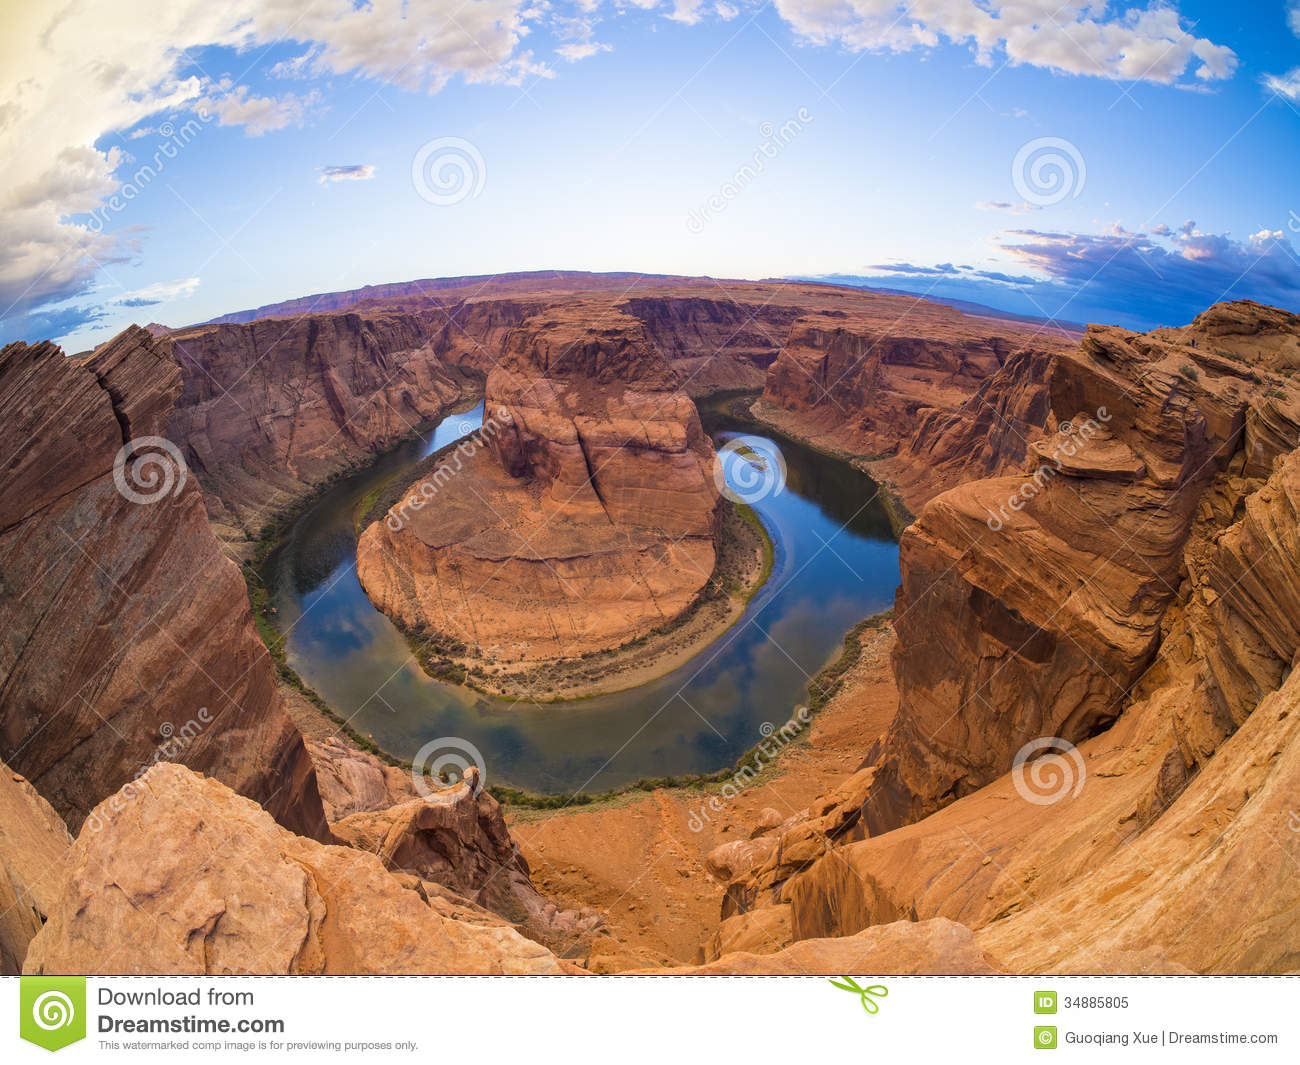 horseshoe bend online dating Latest local news for horseshoe bend, ar : horseshoe bend, arkansas is located in izard countyzip codes in horseshoe bend, ar include 72512, and 72536.